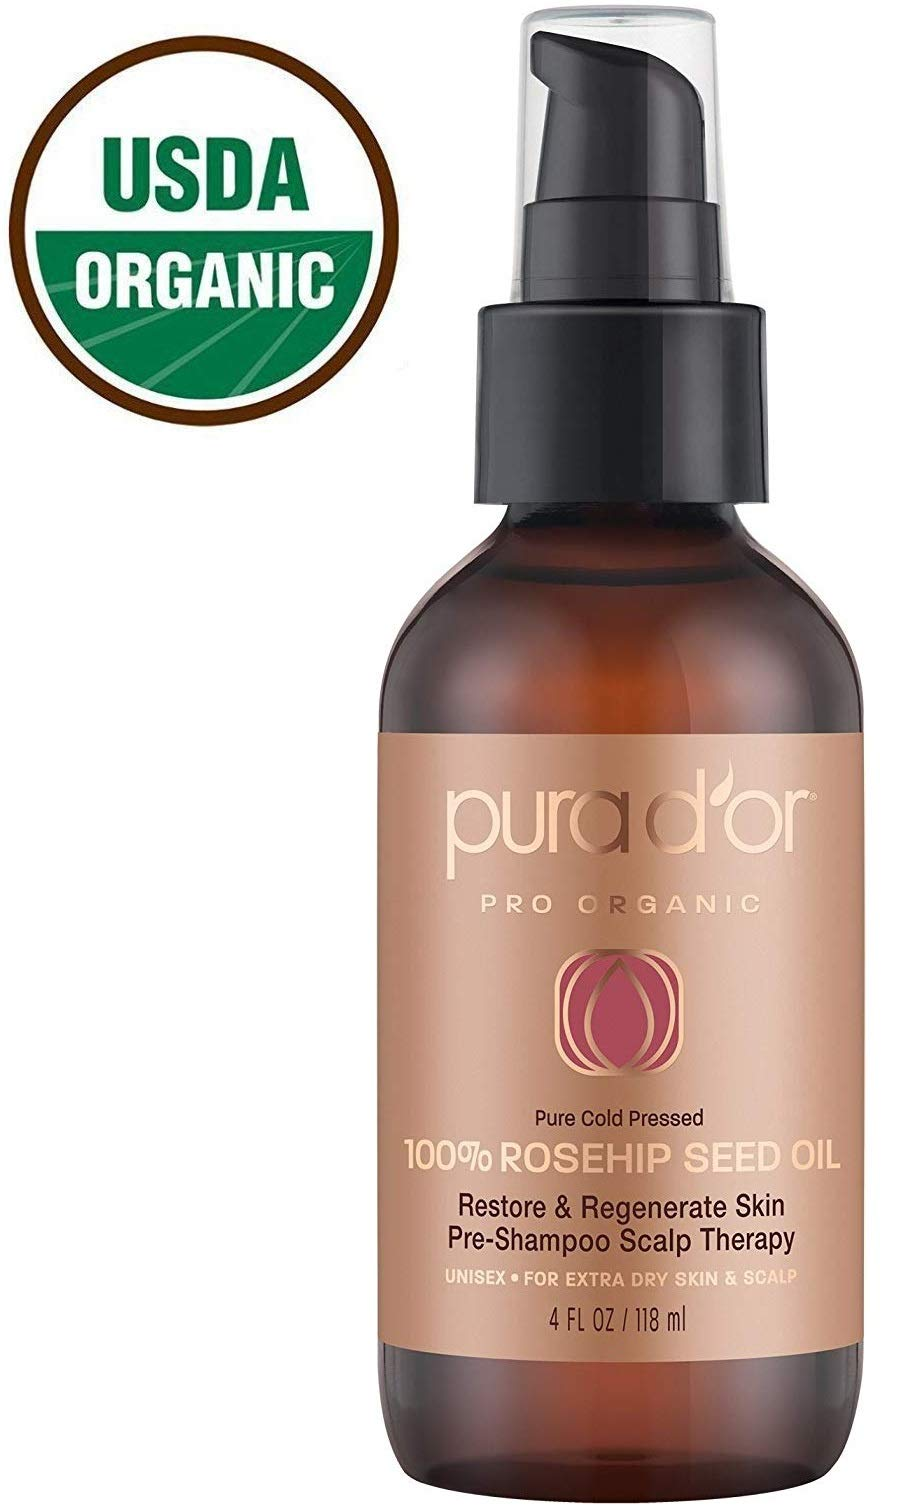 PURA D'OR (4 oz) Organic Rosehip Seed Oil 100% Pure Cold Pressed & USDA Certified Organic For Face, Hair, Skin & Nails, Men & Women